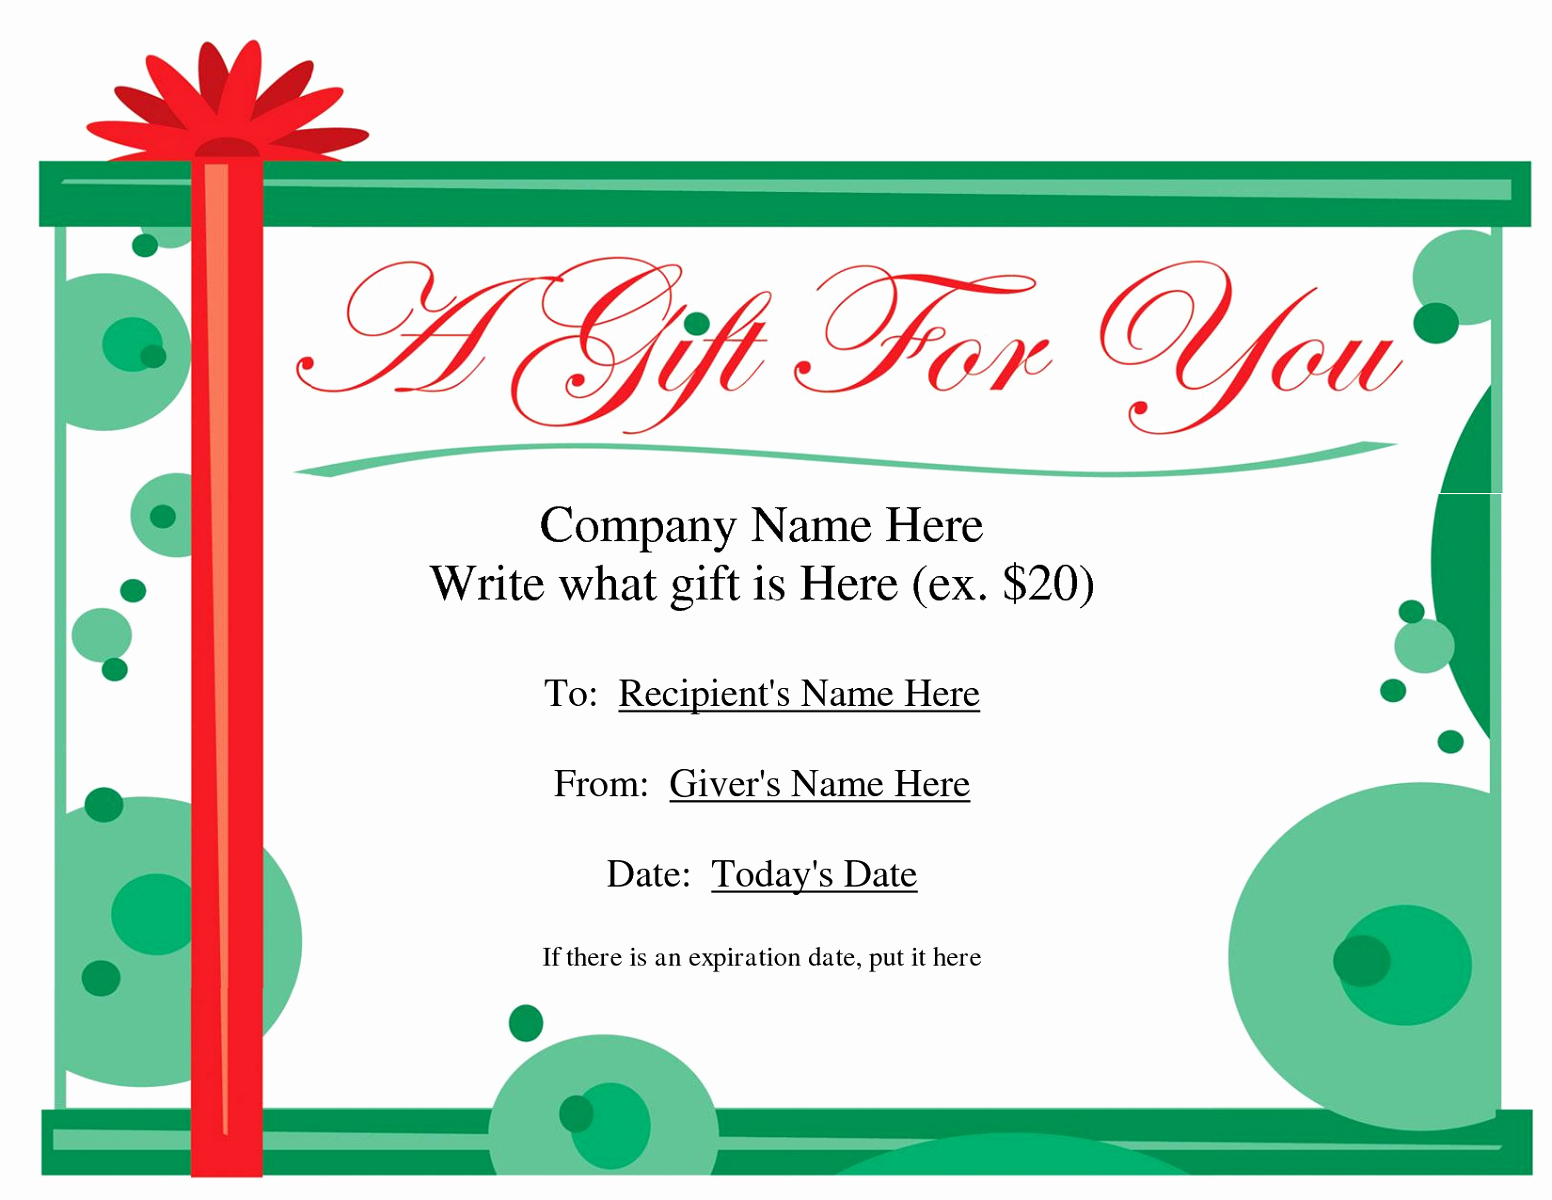 Gift Certificate Template Word Free Beautiful Gift Certificate Templates to Print